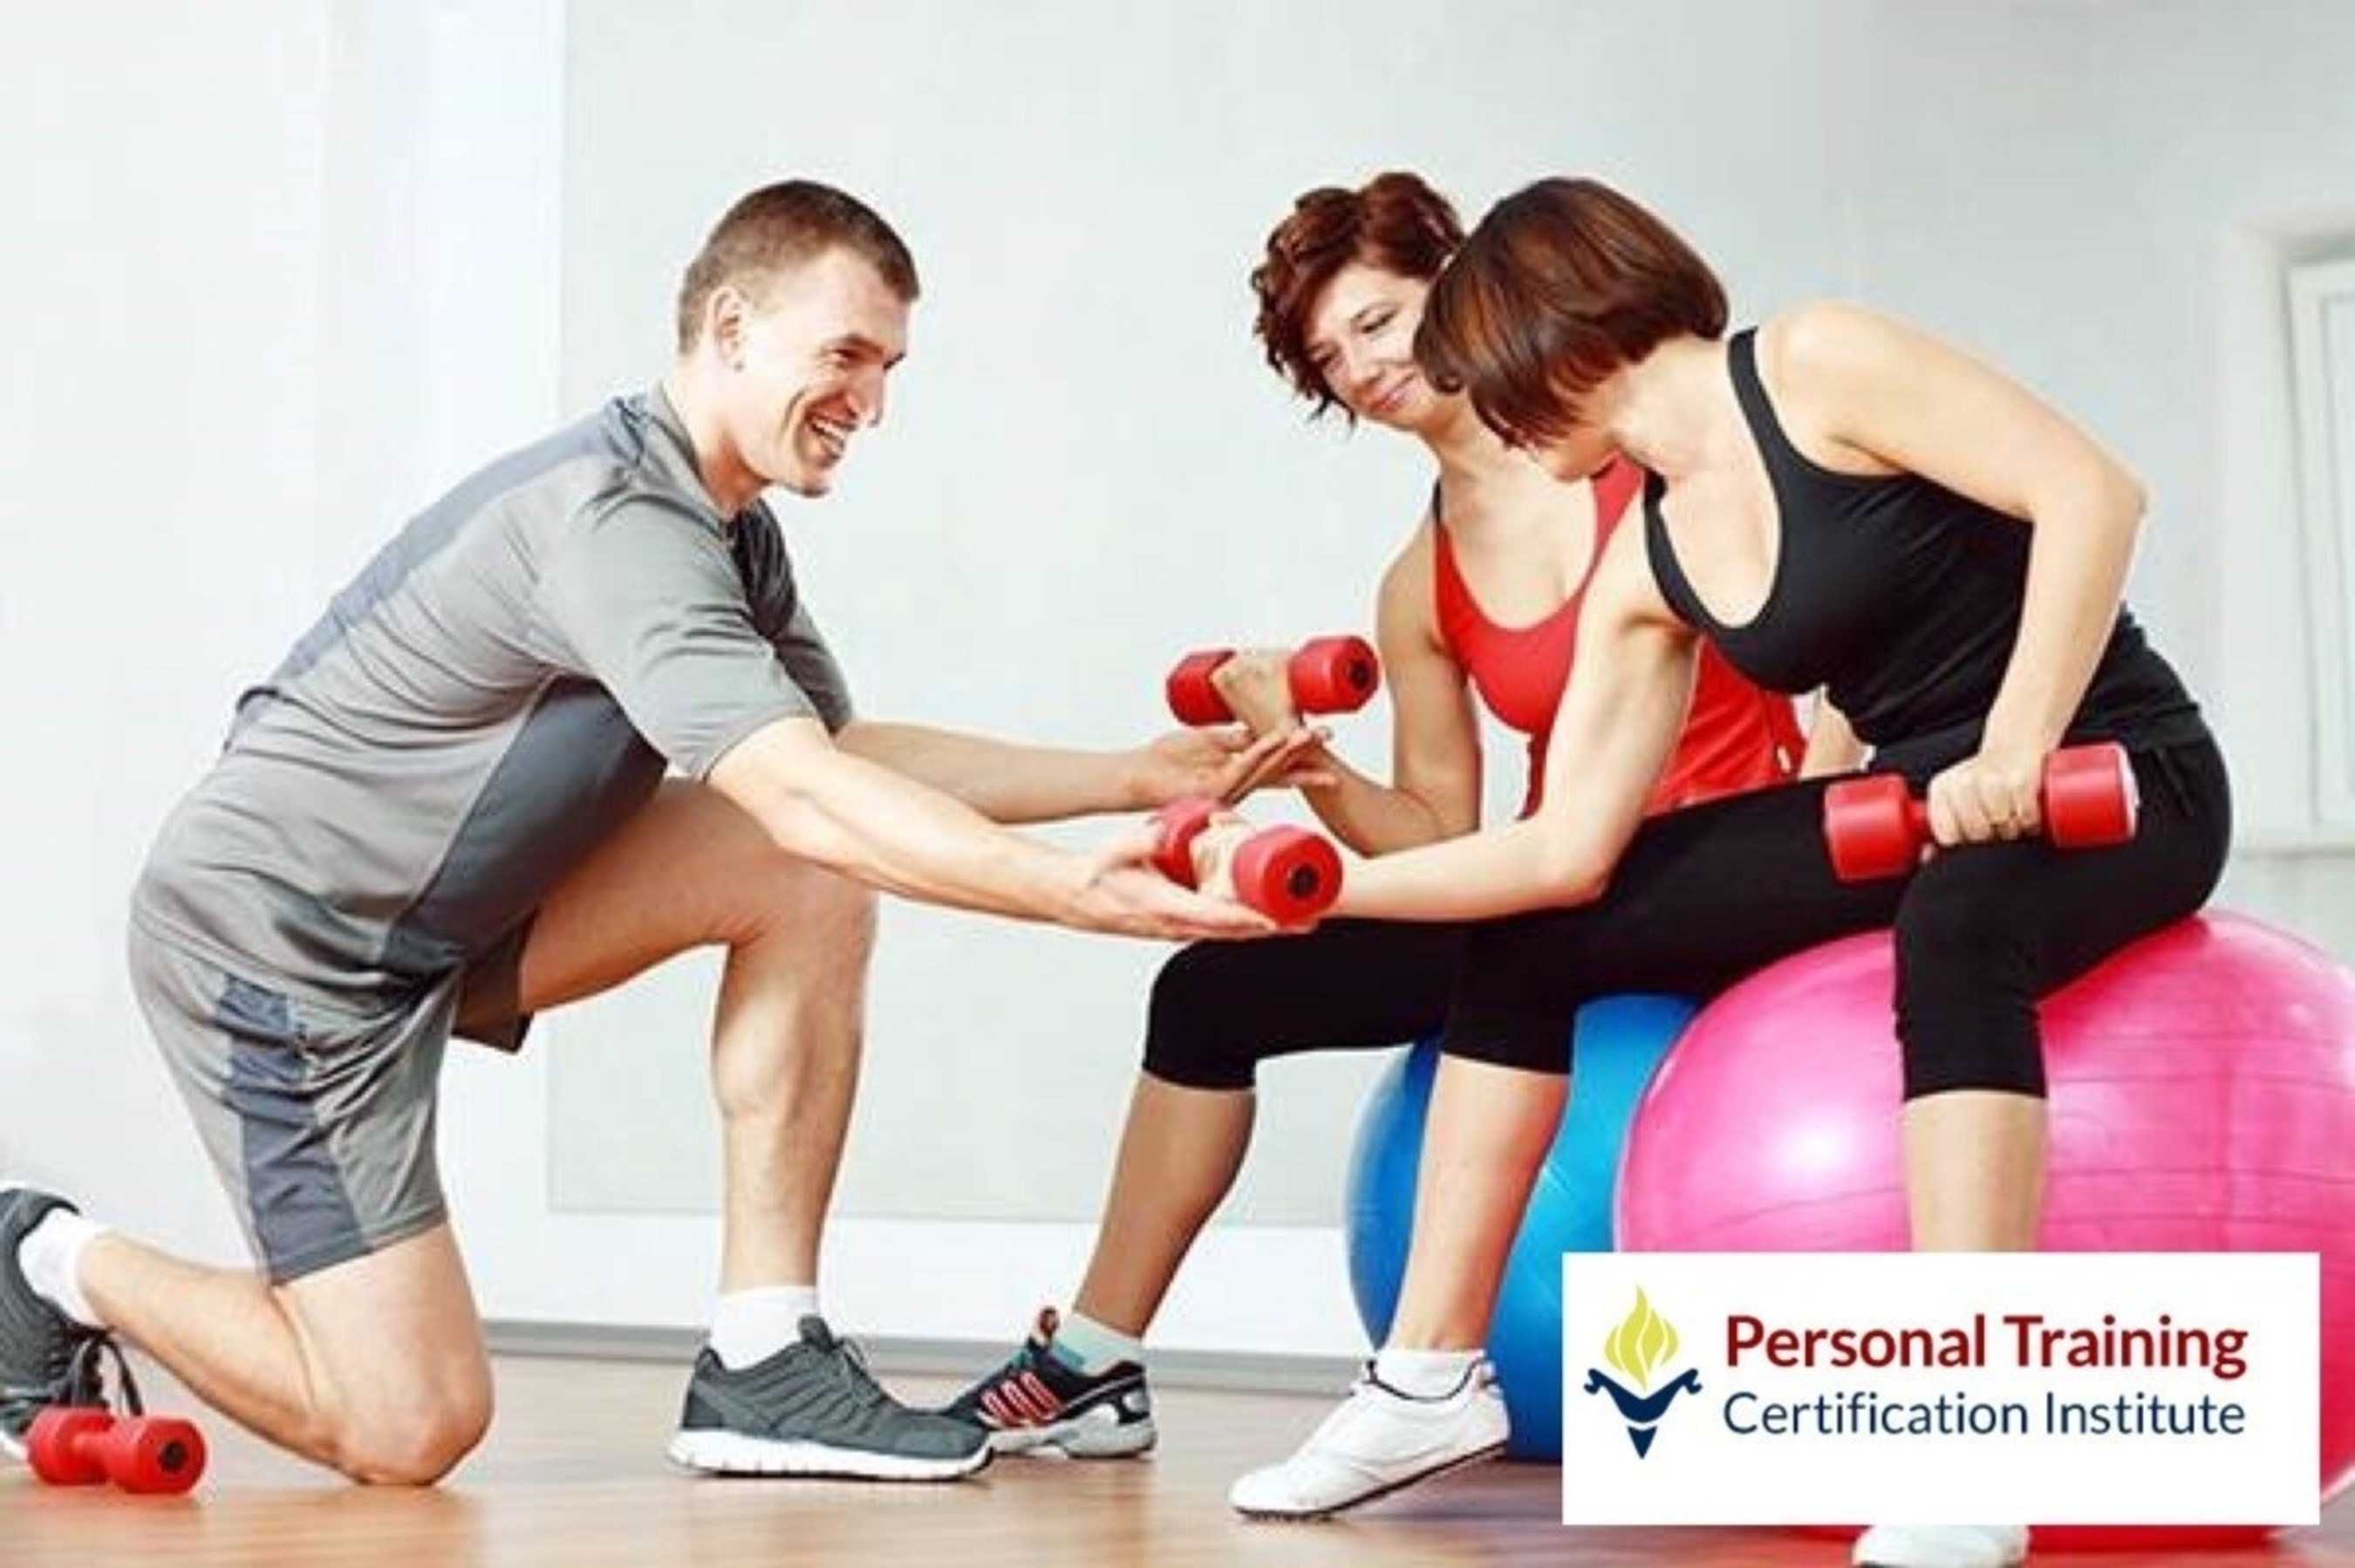 Personal Training Certification Institute Launches Website and New Programs for Aspiring Fitness